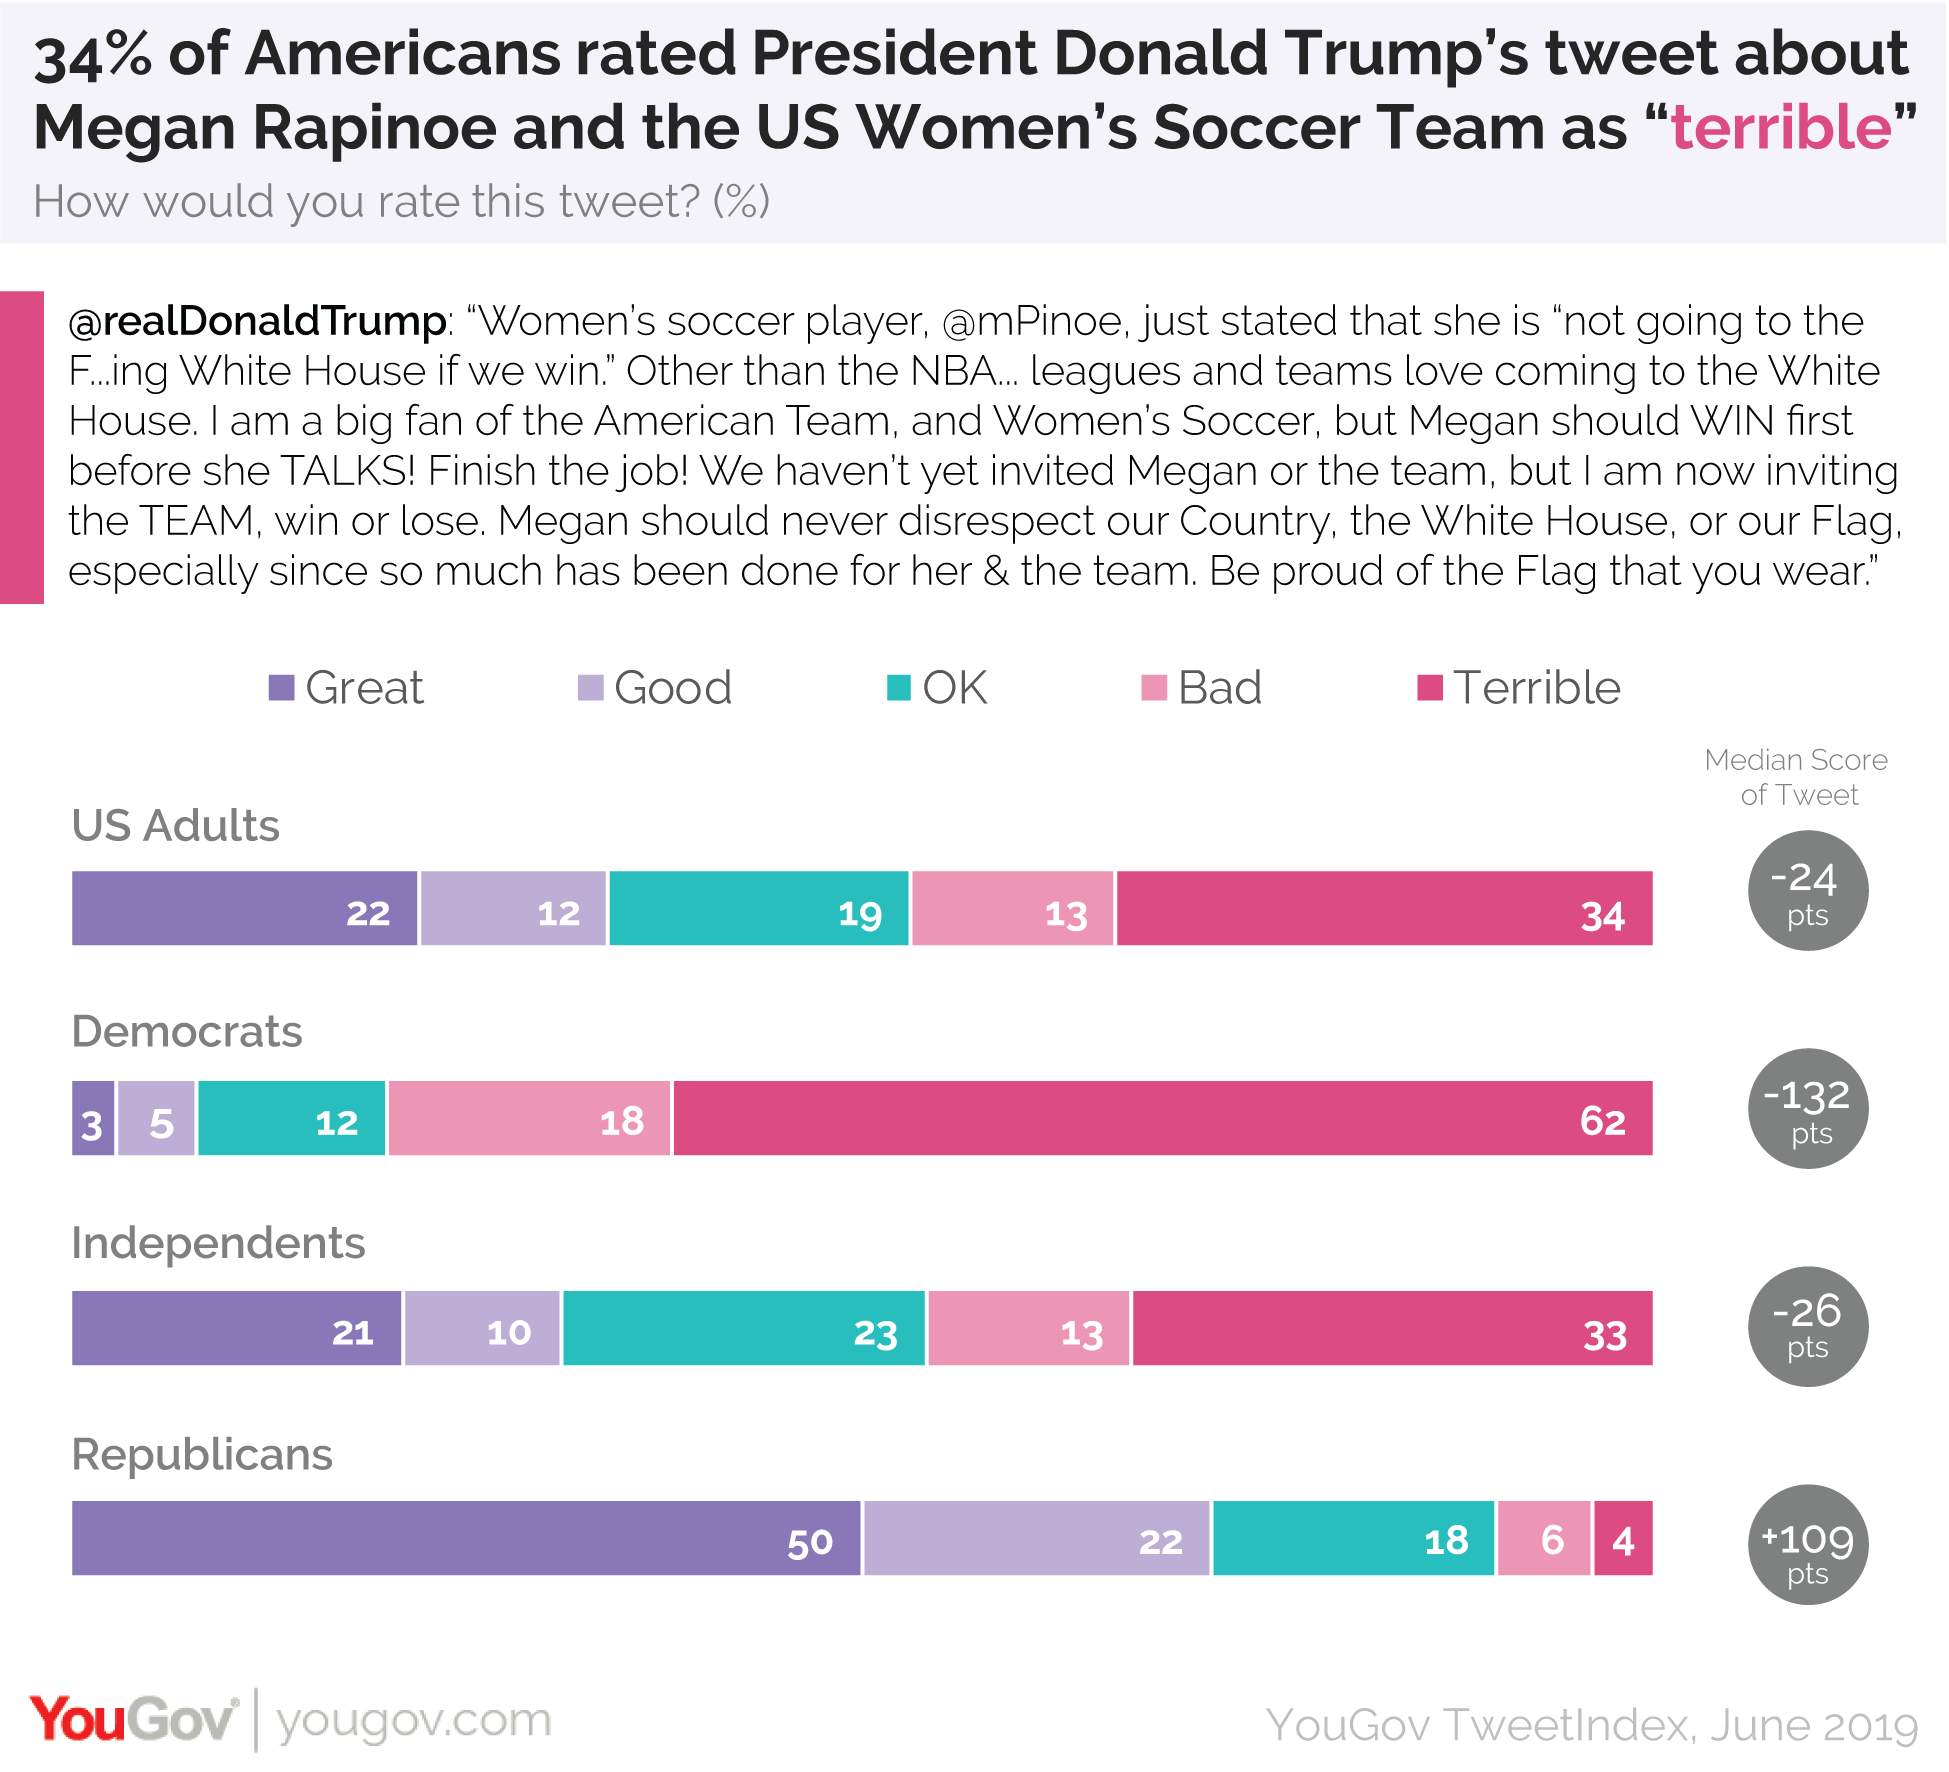 34% of Americans rated President Donald Trump's tweet about Megan Rapinoe and the US Women's Soccer Team as terrible